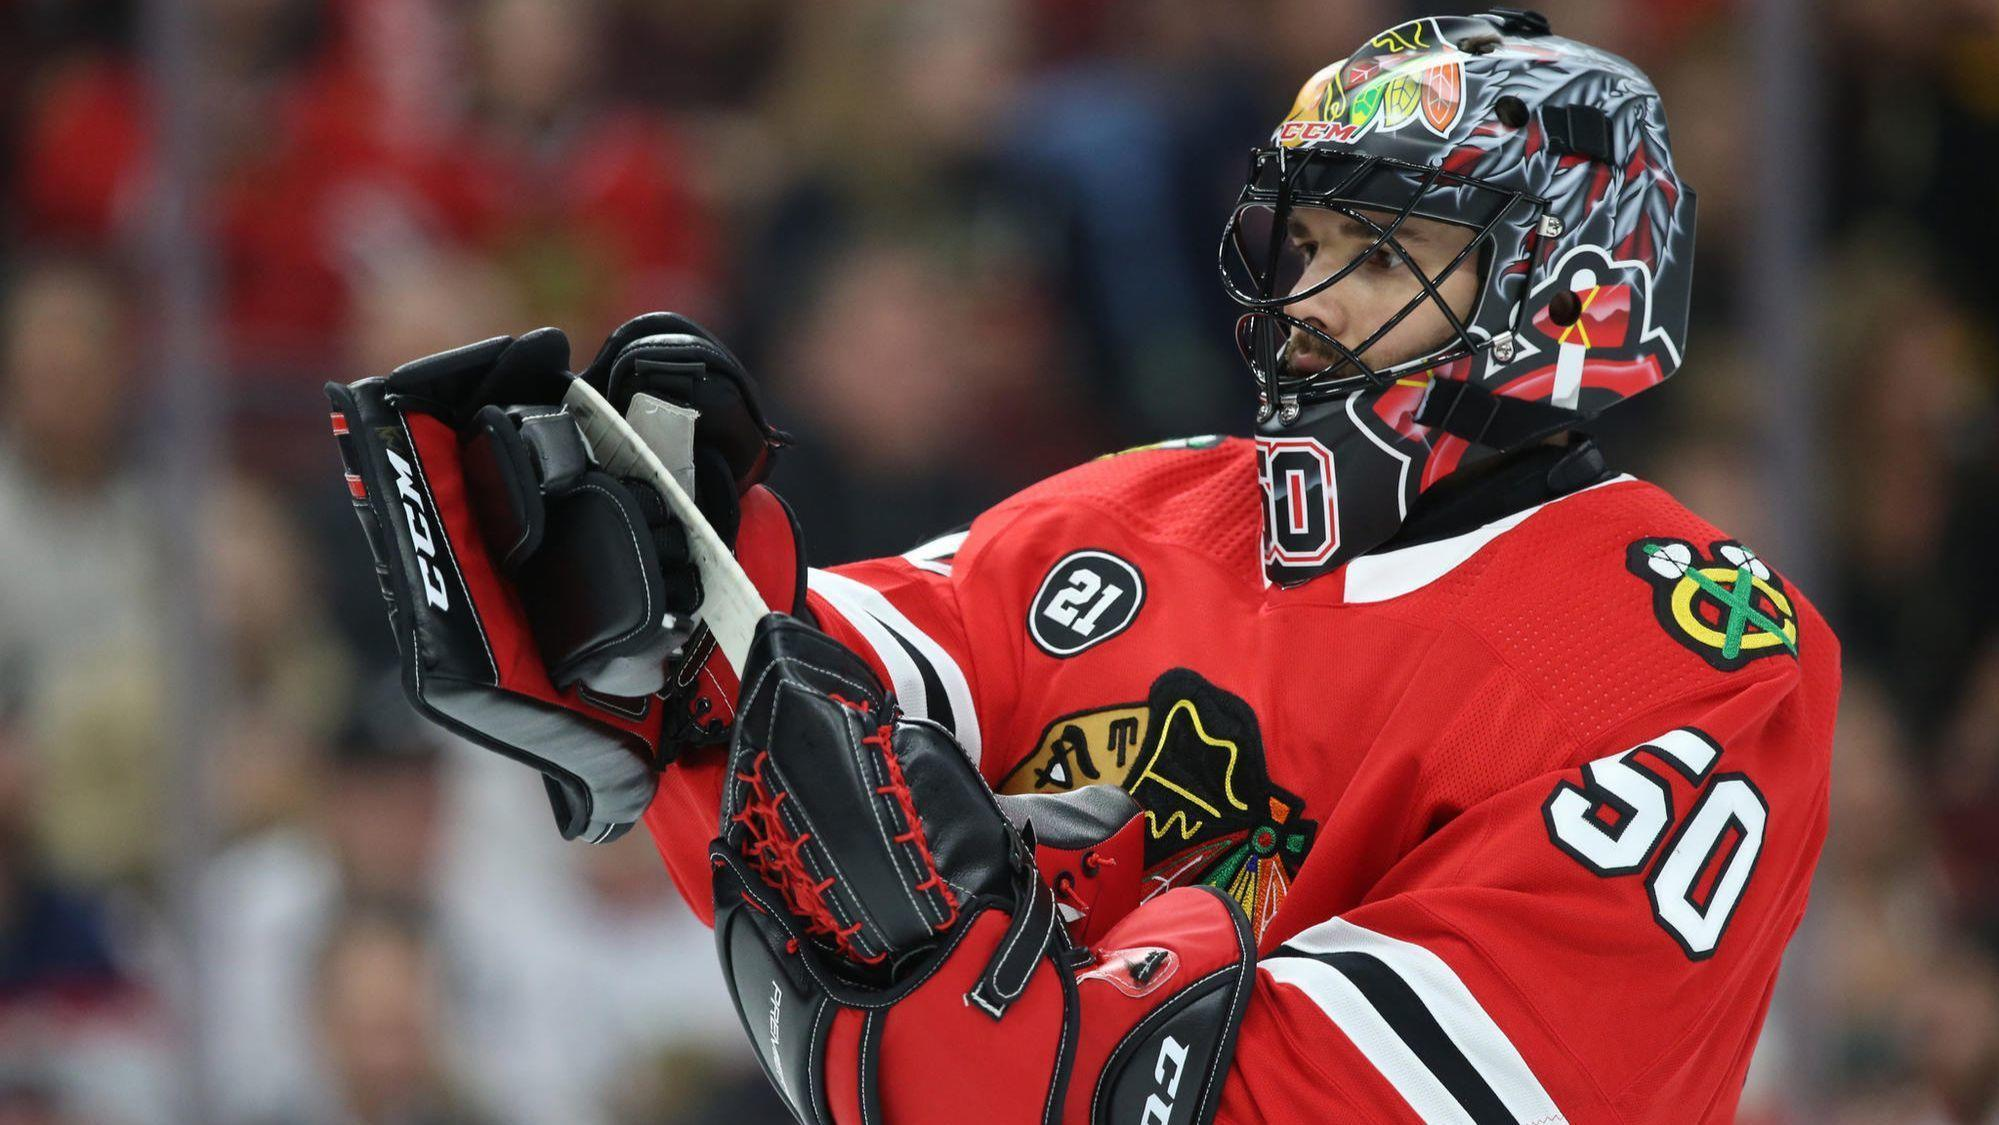 Corey Crawford could finally see action on Blackhawks' important 3-game West Coast road trip